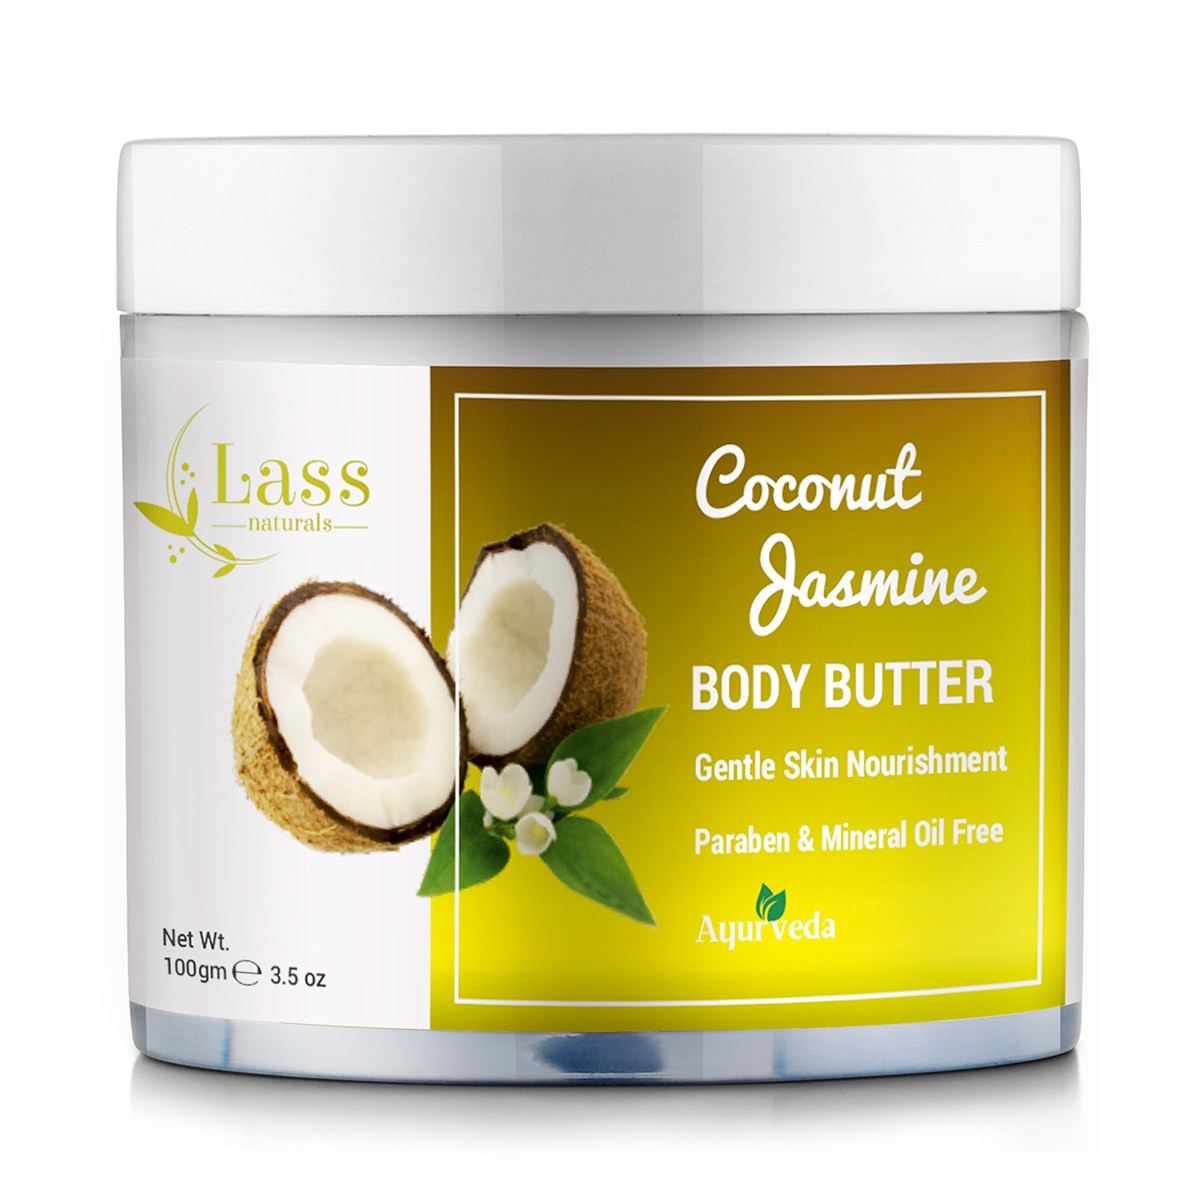 Coconut Jasmine Body Butter